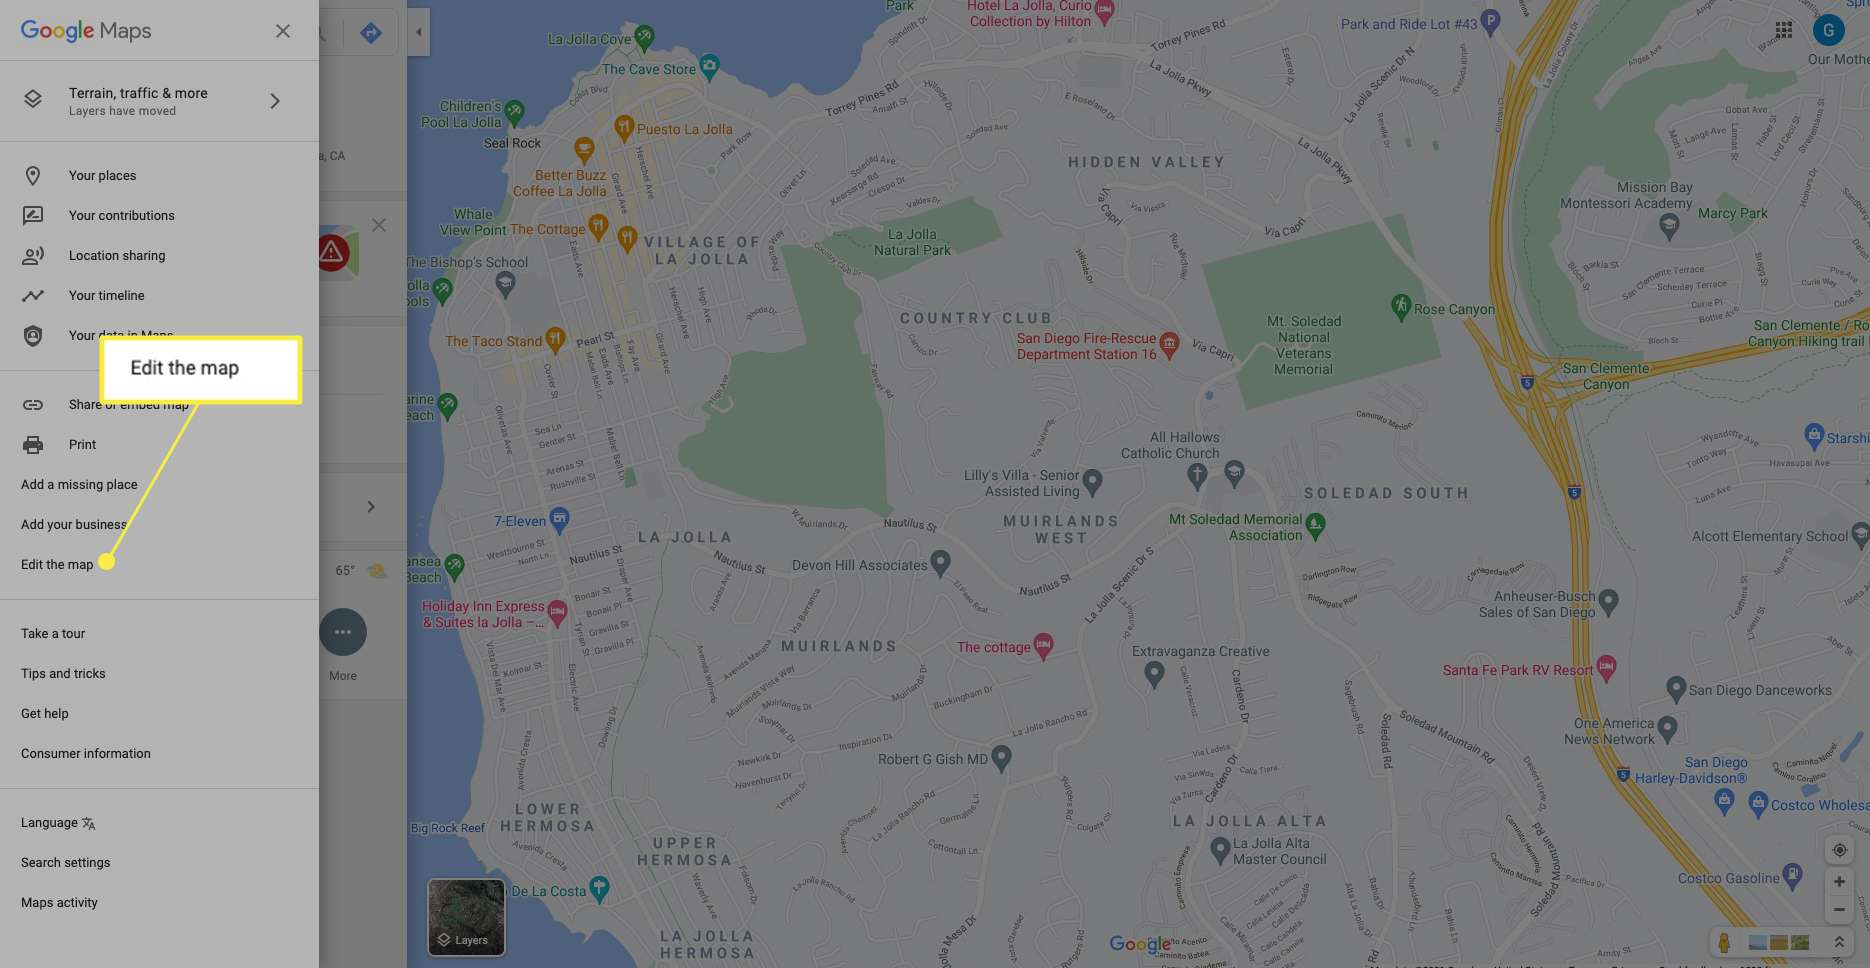 Google Maps Menu with Edit the Map highlighted